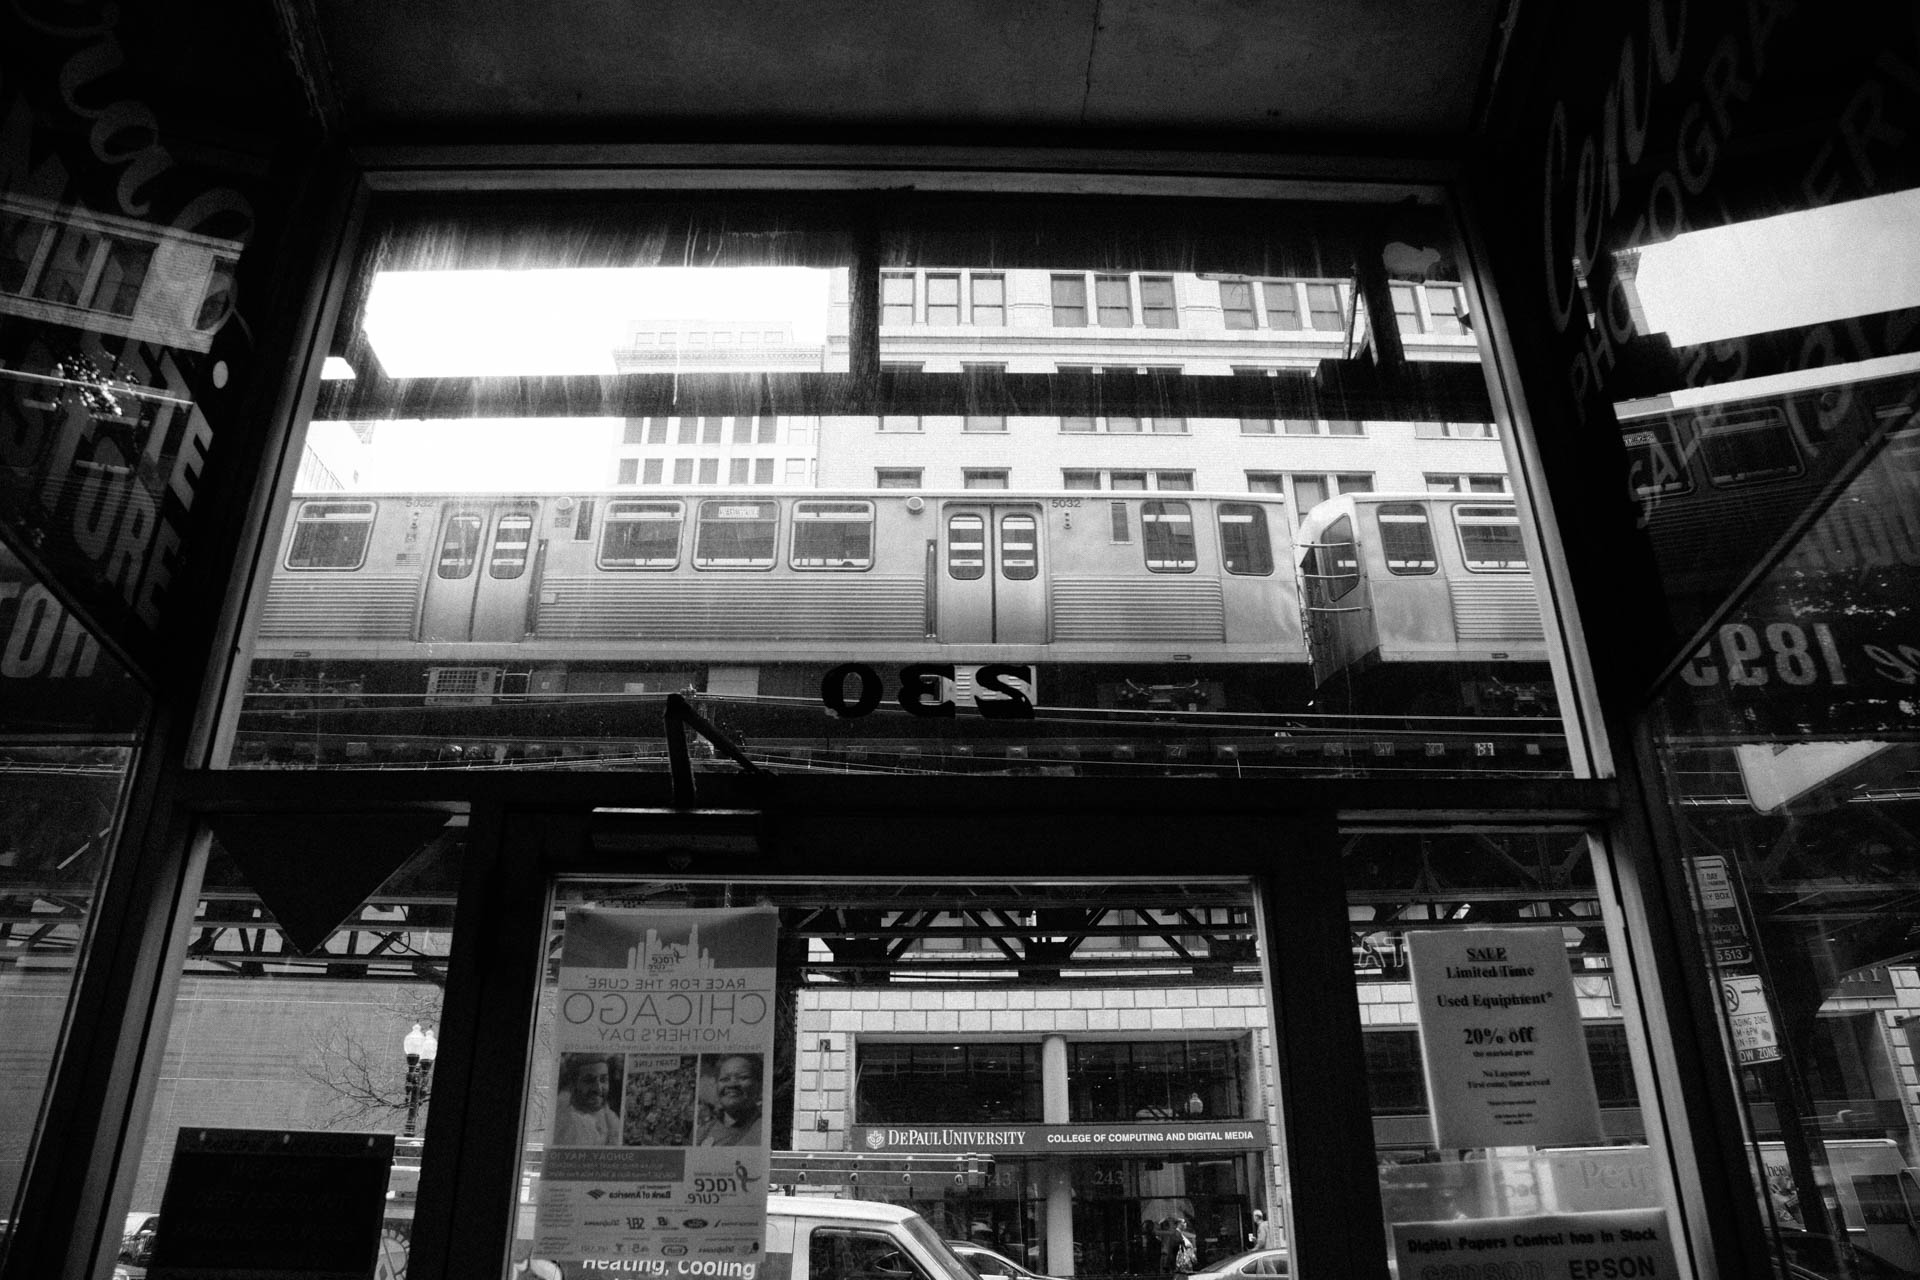 chicago-elevated-rail-through-store-front-window-6158untitled